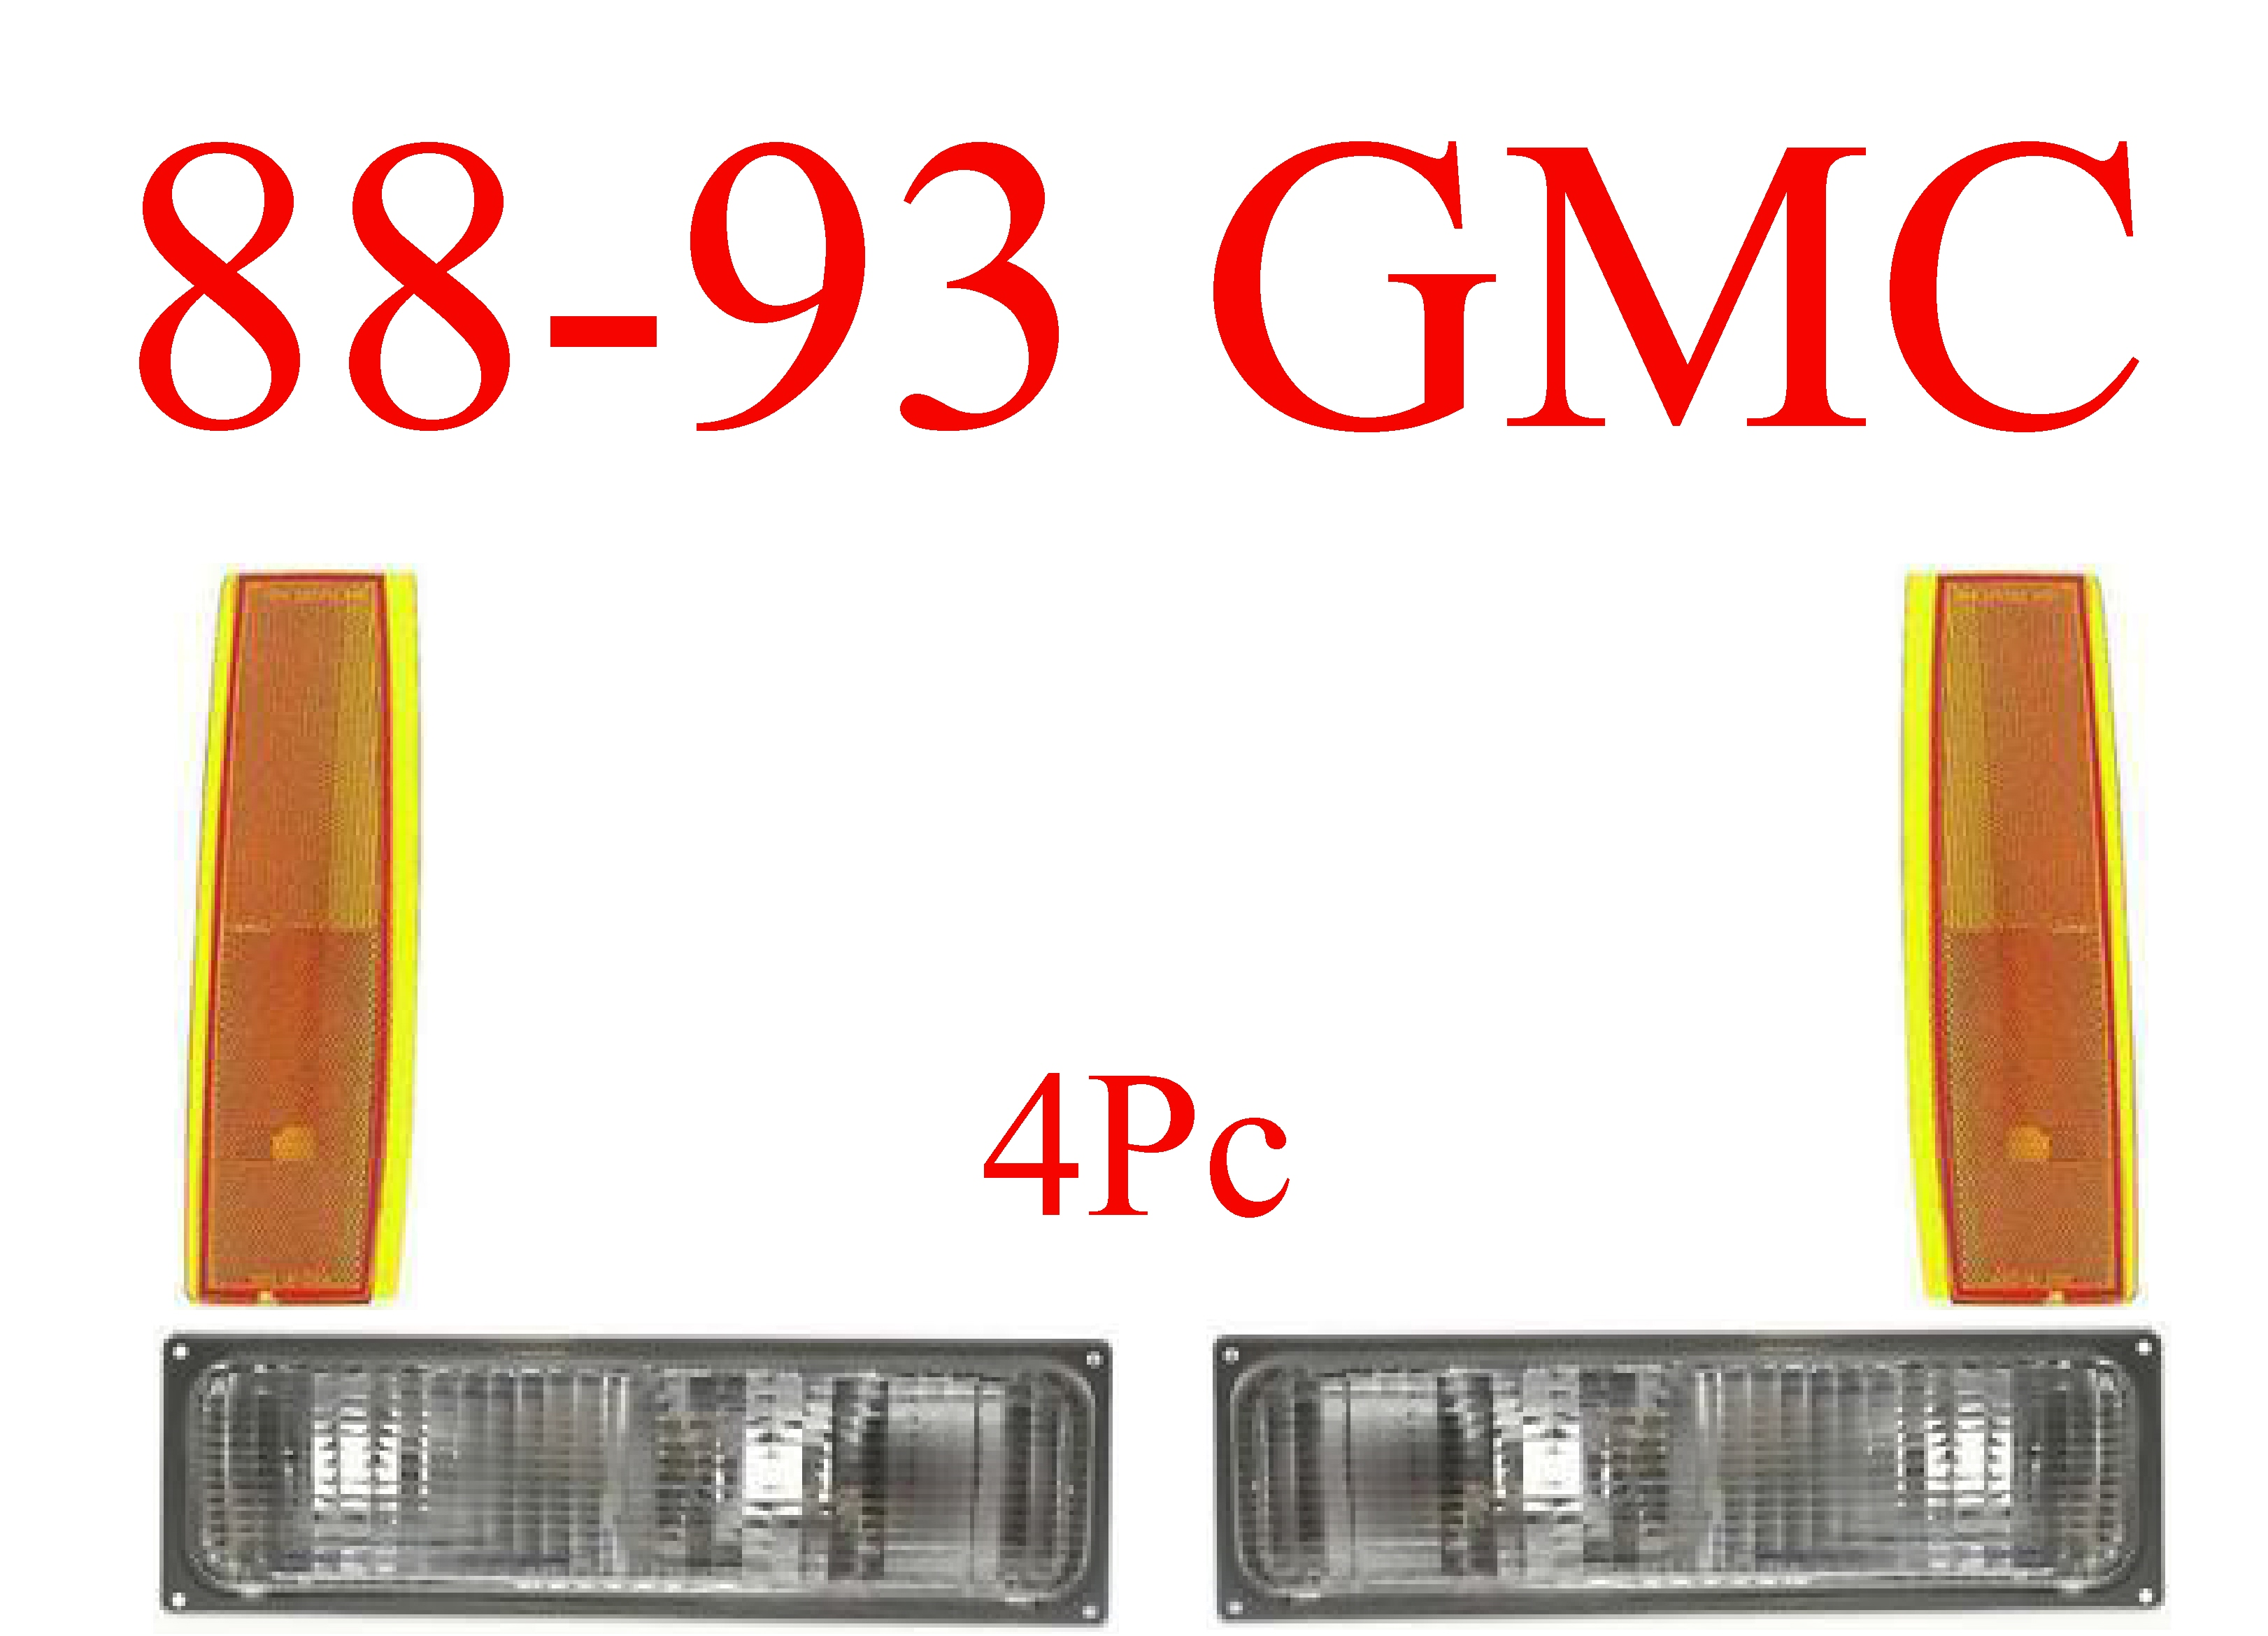 88-93 GMC 4Pc Parking & Side Amber Lights